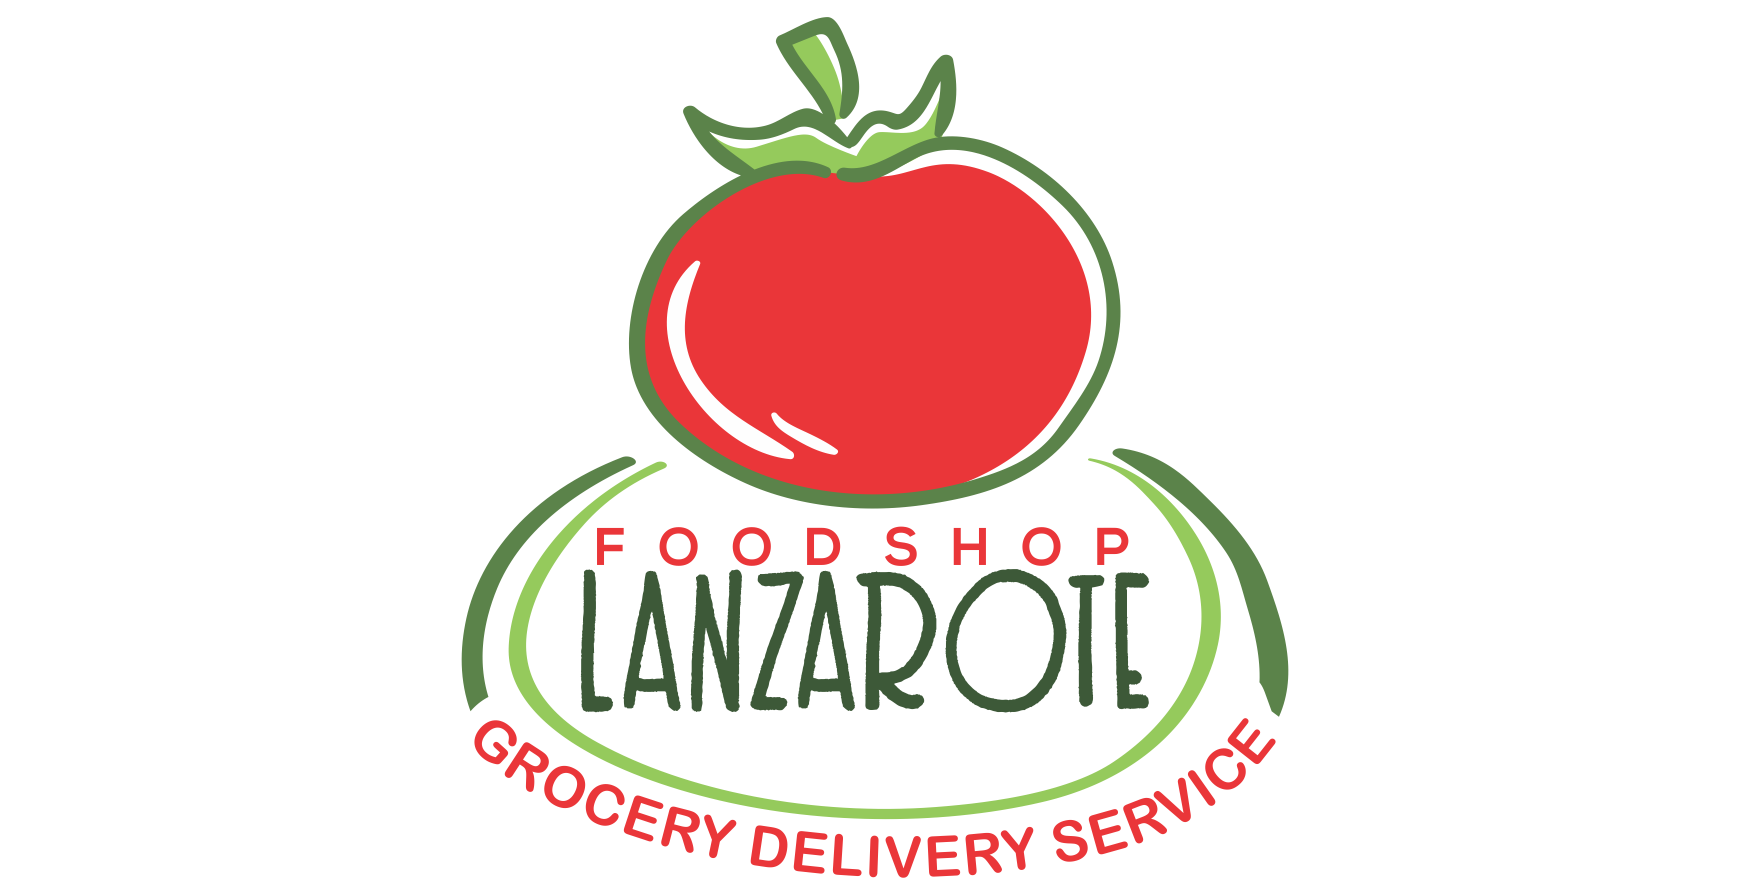 Grocery Delivery Service Lanzarote Shopping Delivery Lanzarote